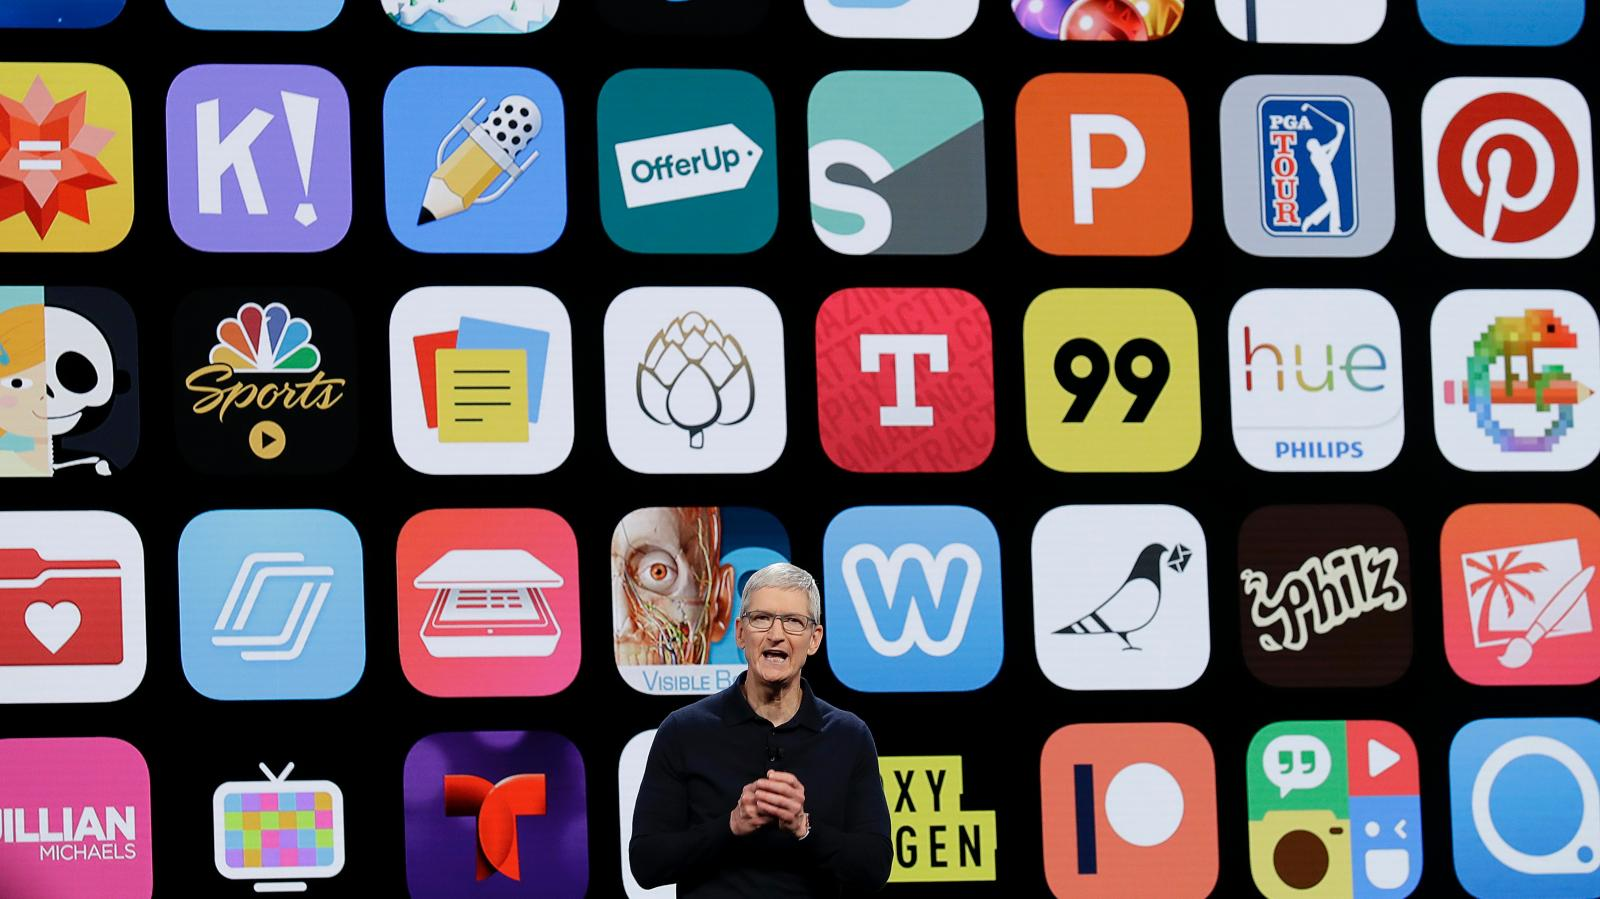 Apple Listed Non-Apple Apps That Worth Trying